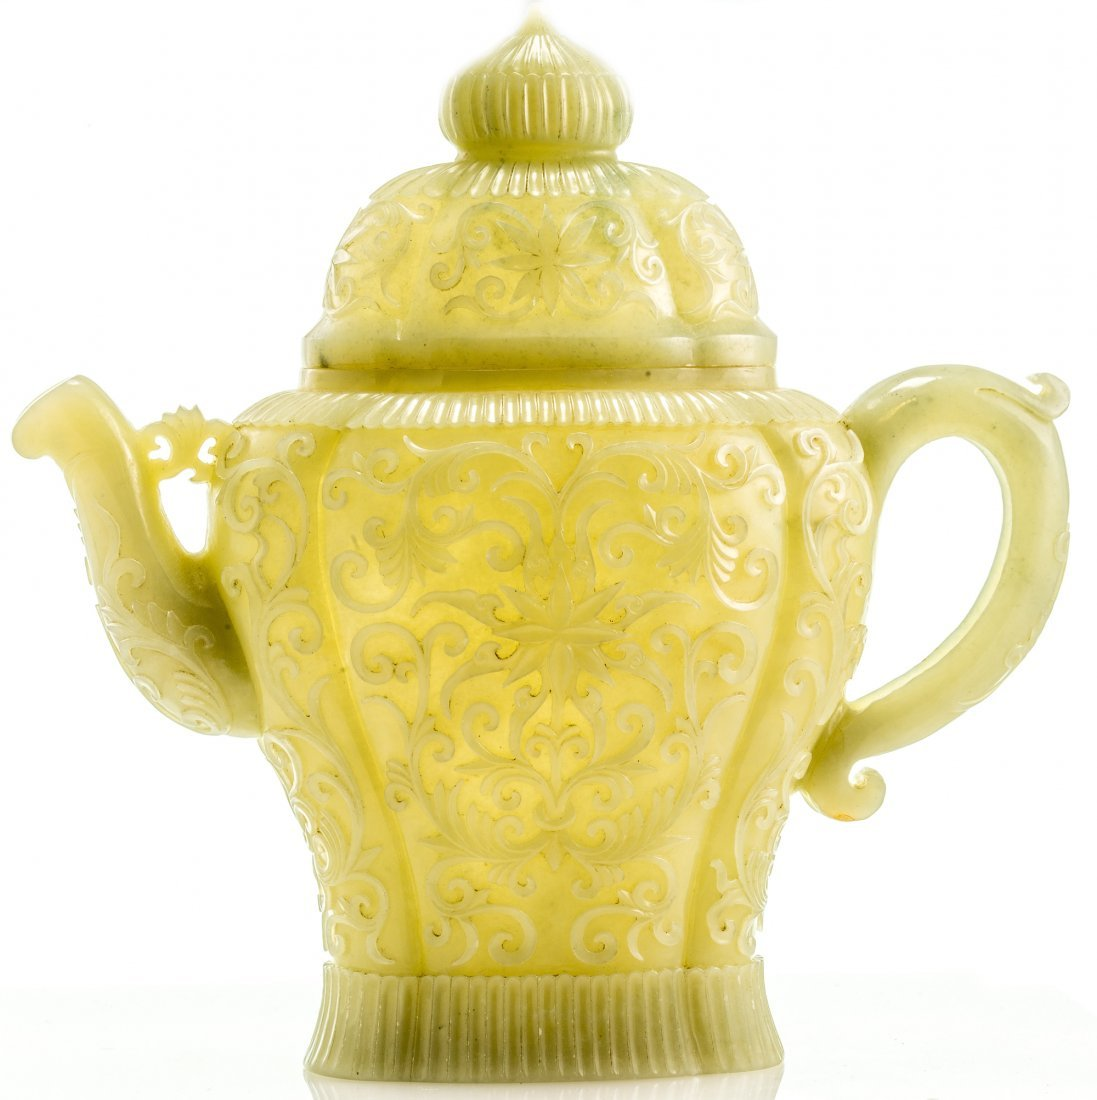 A VERY RARE CHINESE QING DYNASTY (16441911) JADE TEAPOT